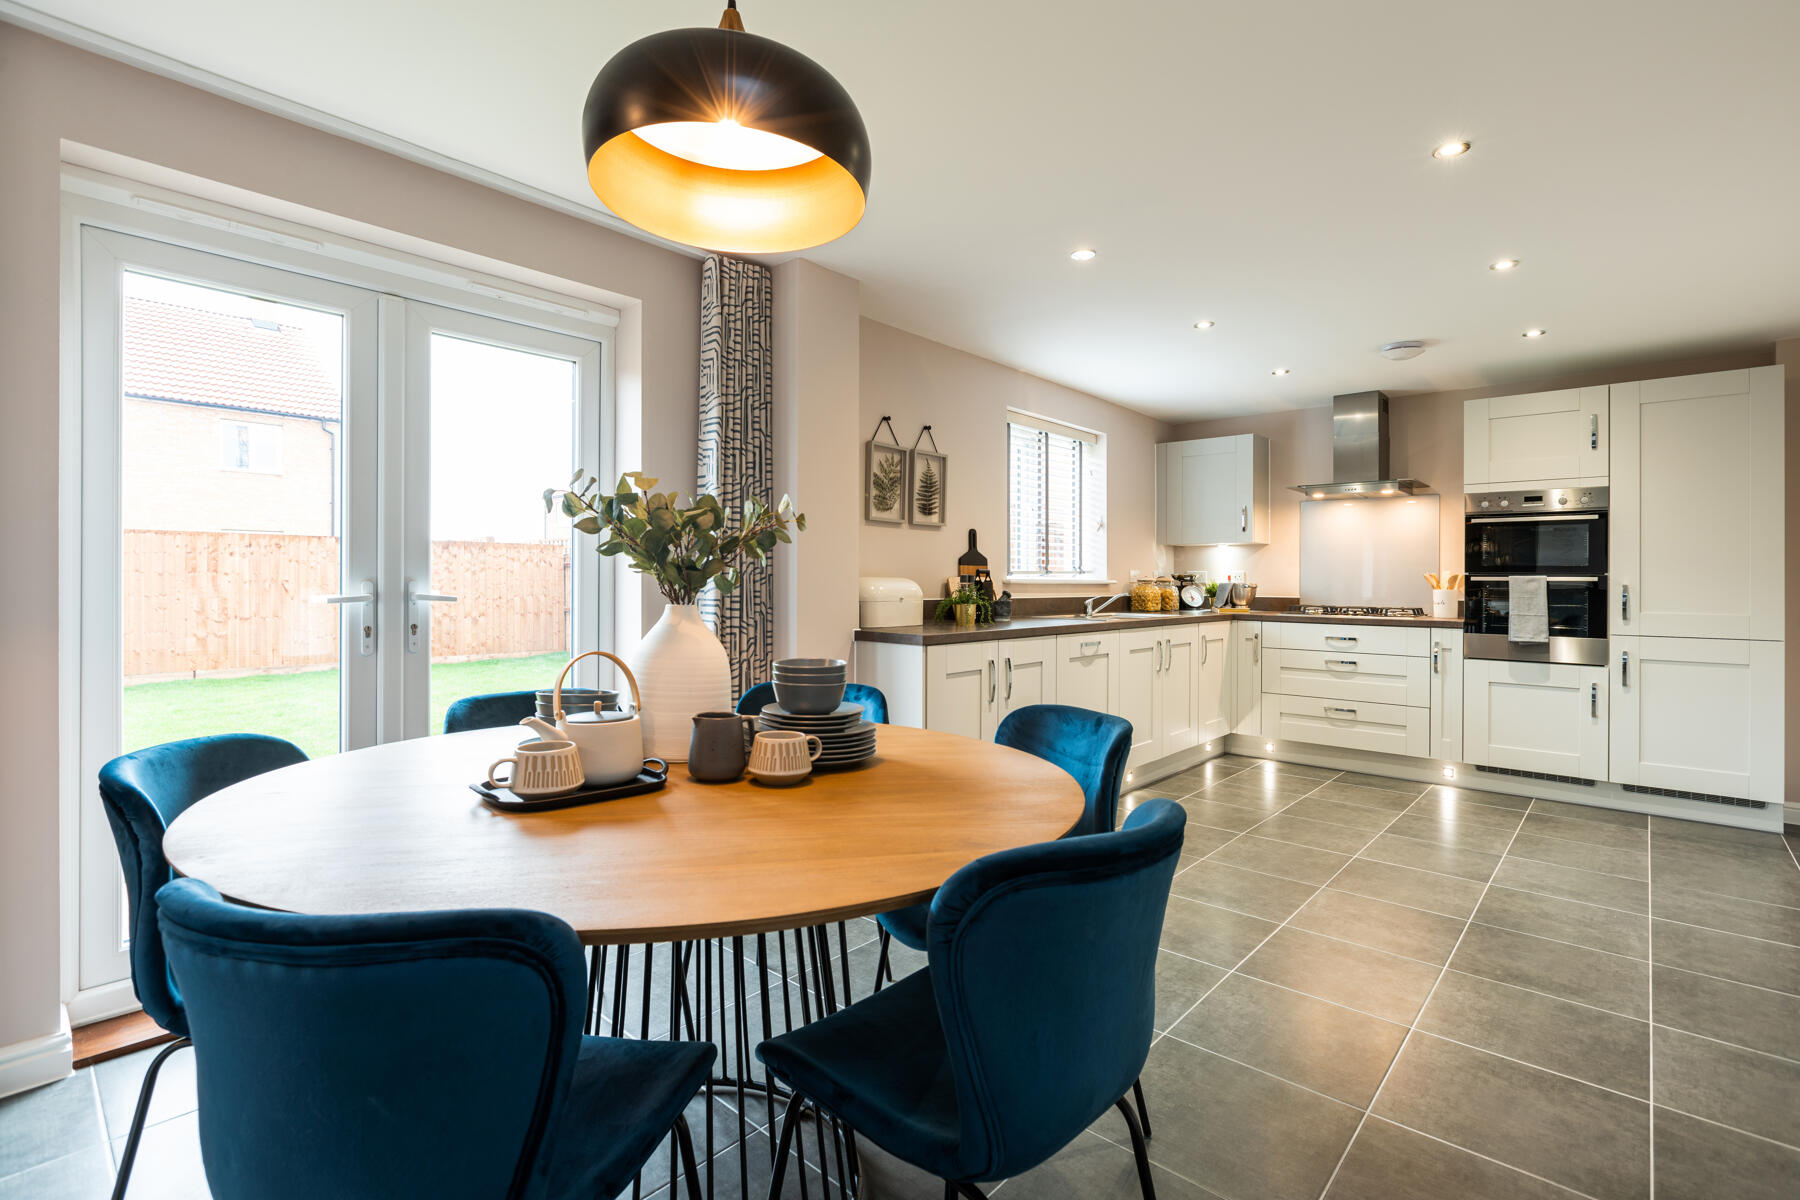 TW EM_Waddington Heath_Wortham_Kitchen 1_1800x1200